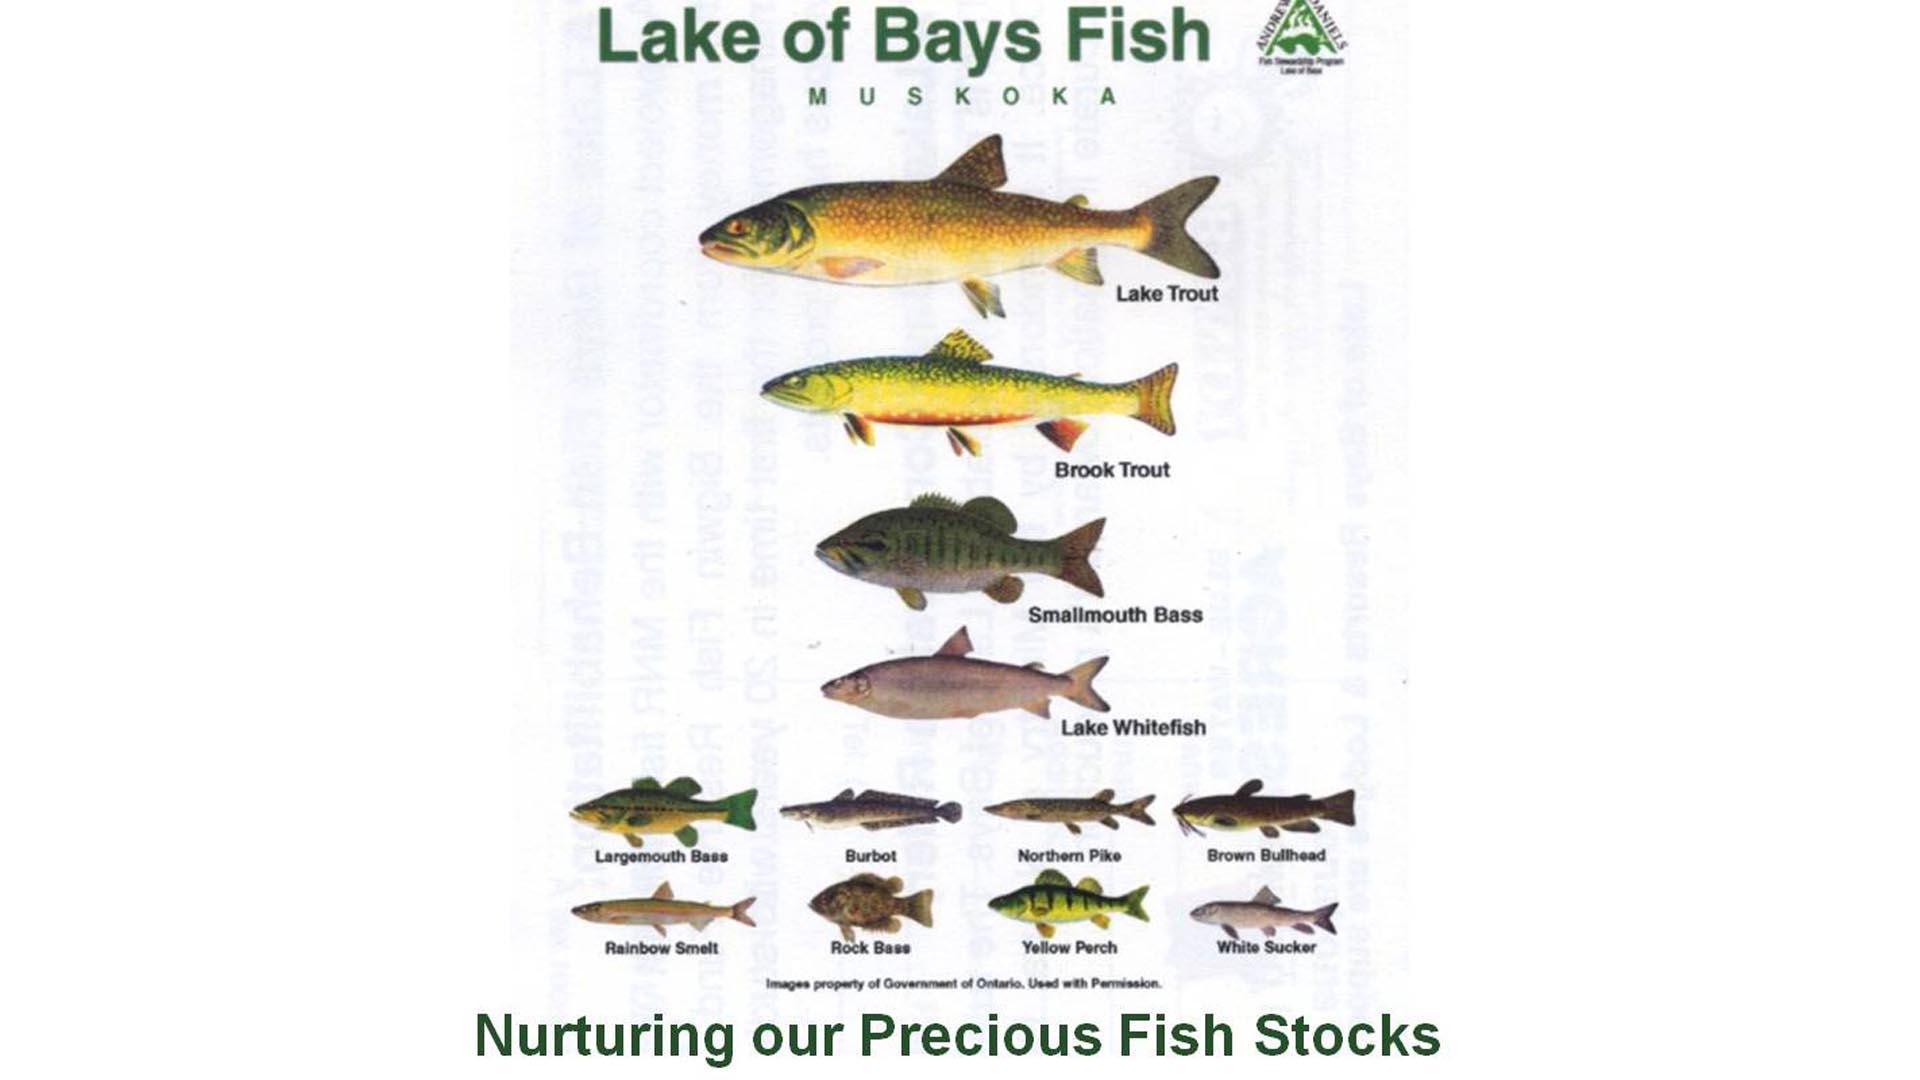 Lake of Bays fish poster.